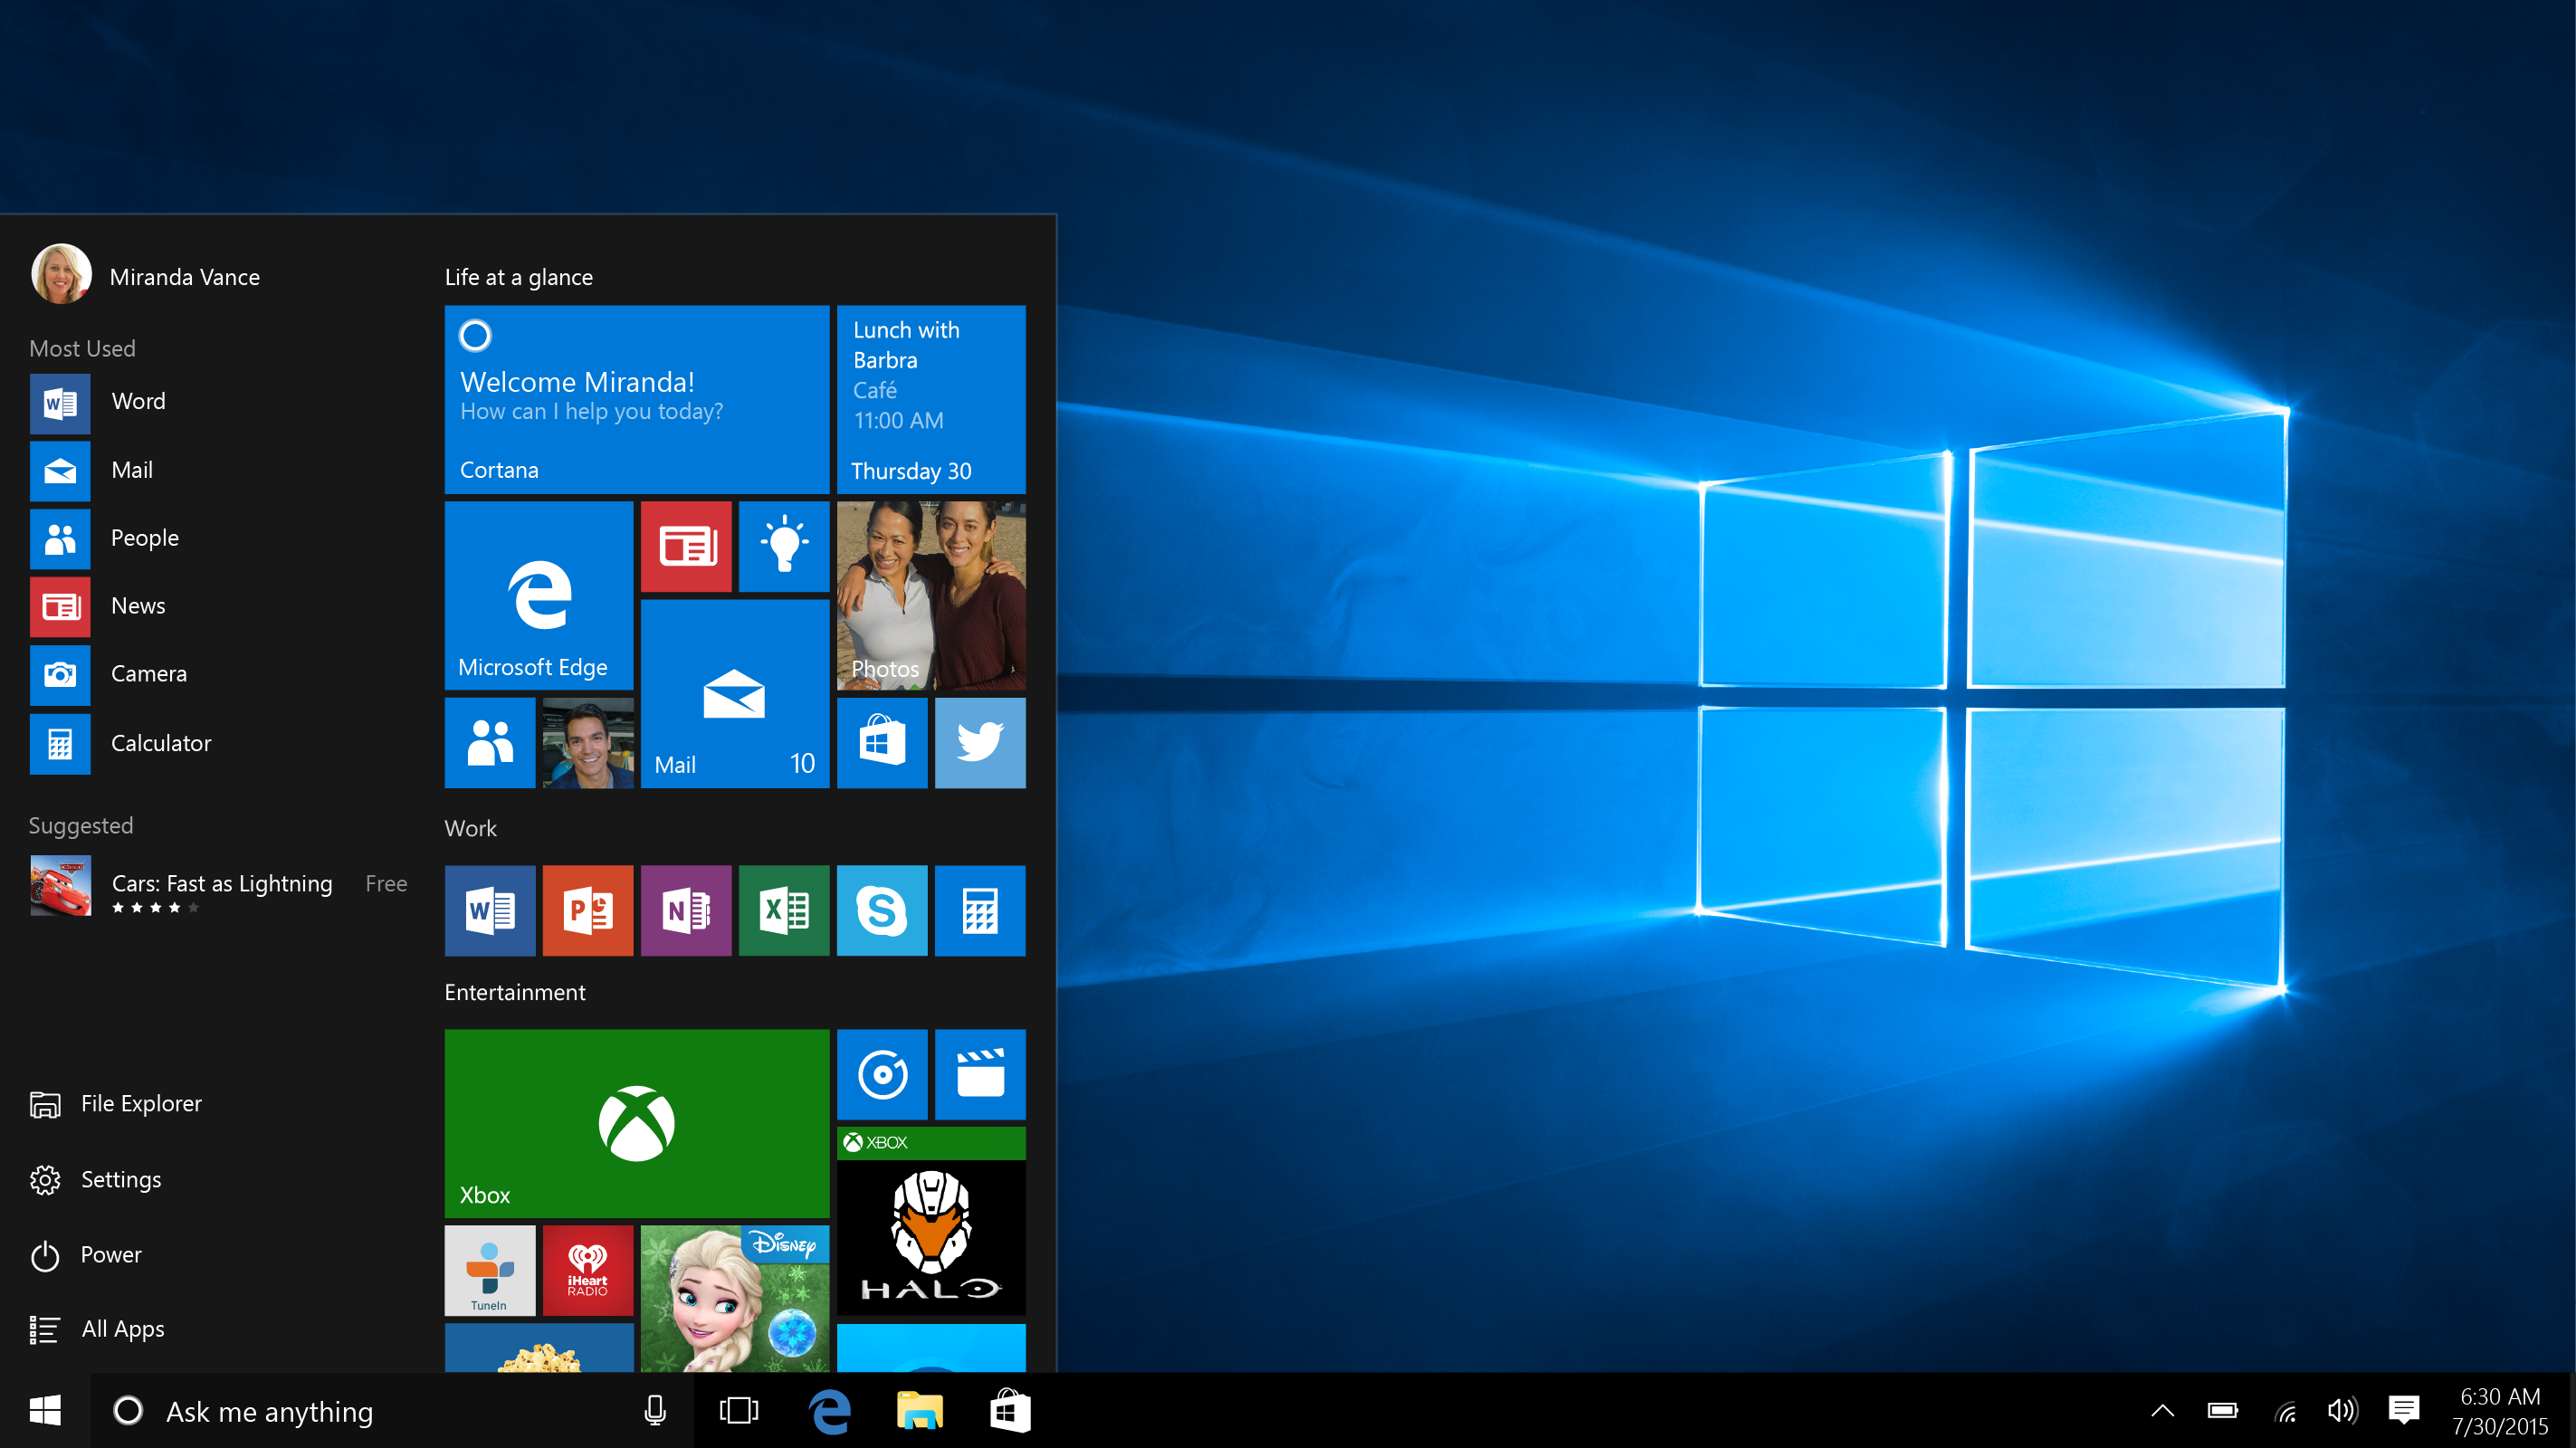 Microsoft pressured to offer Windows 10 upgrades at 75 percent off due to ransomware attacks - NotebookCheck.net News